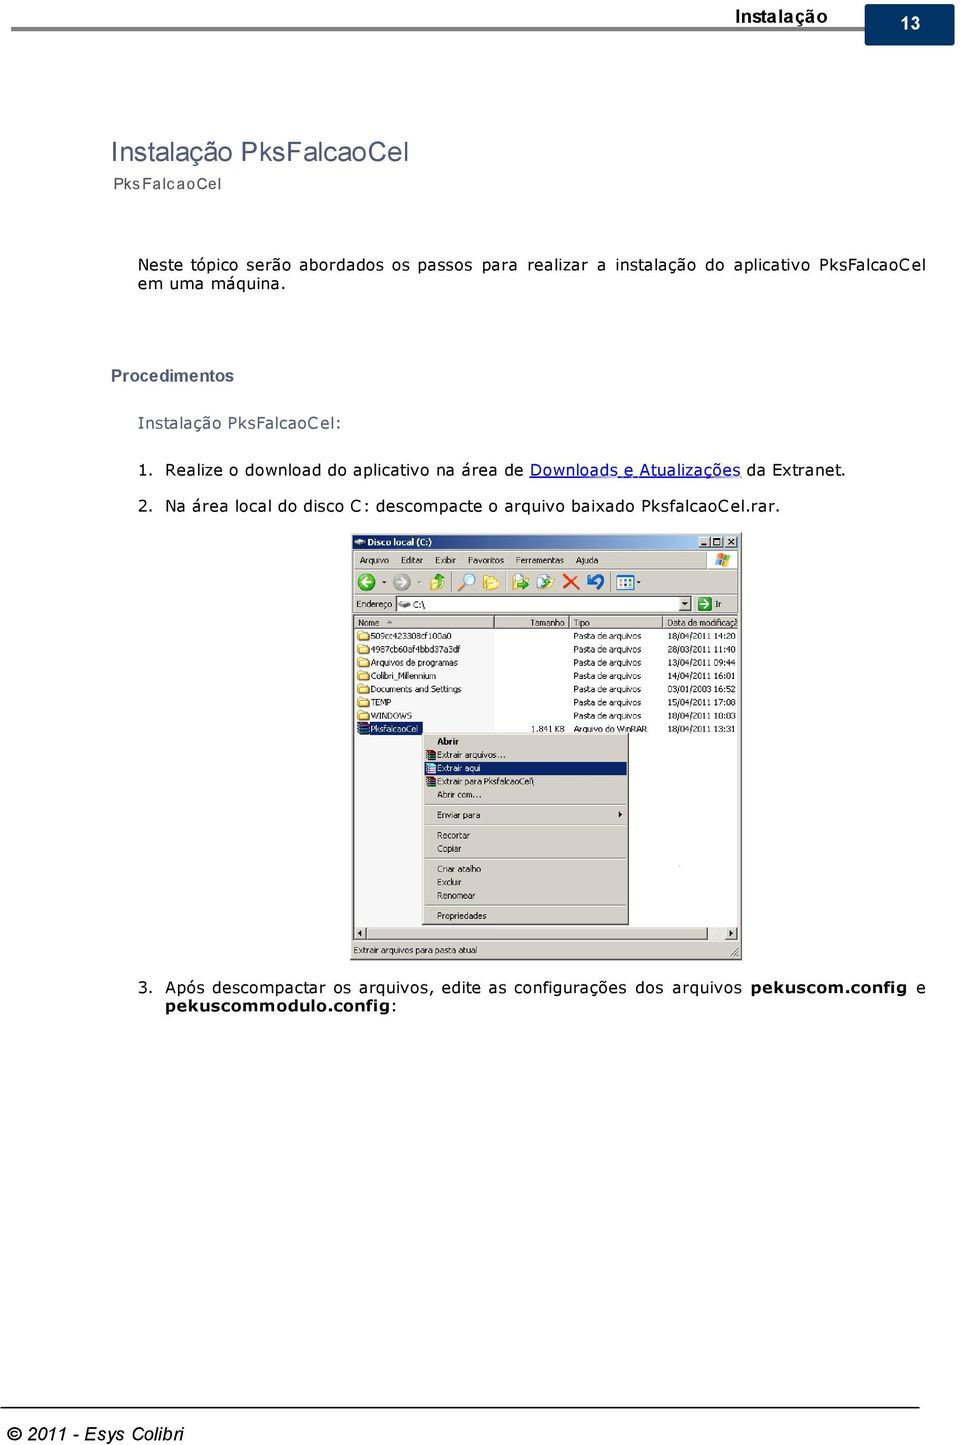 Realize o download do aplicativo na área de Downloads e Atualizações da Extranet. 2.